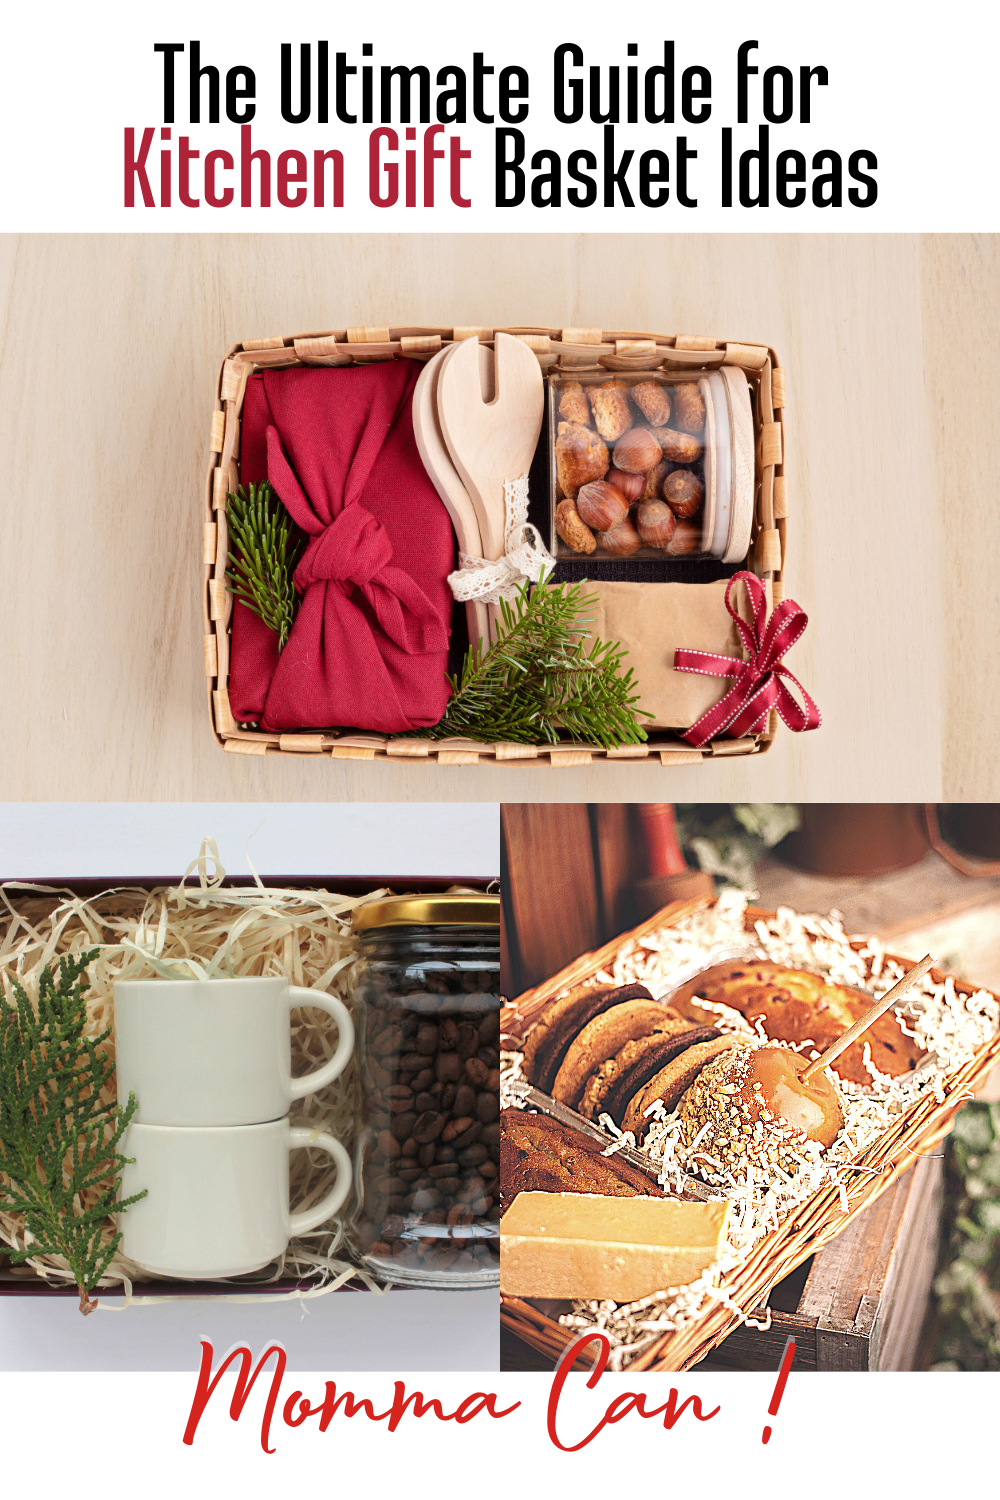 Kitchen Gift Basket Ideas Guide